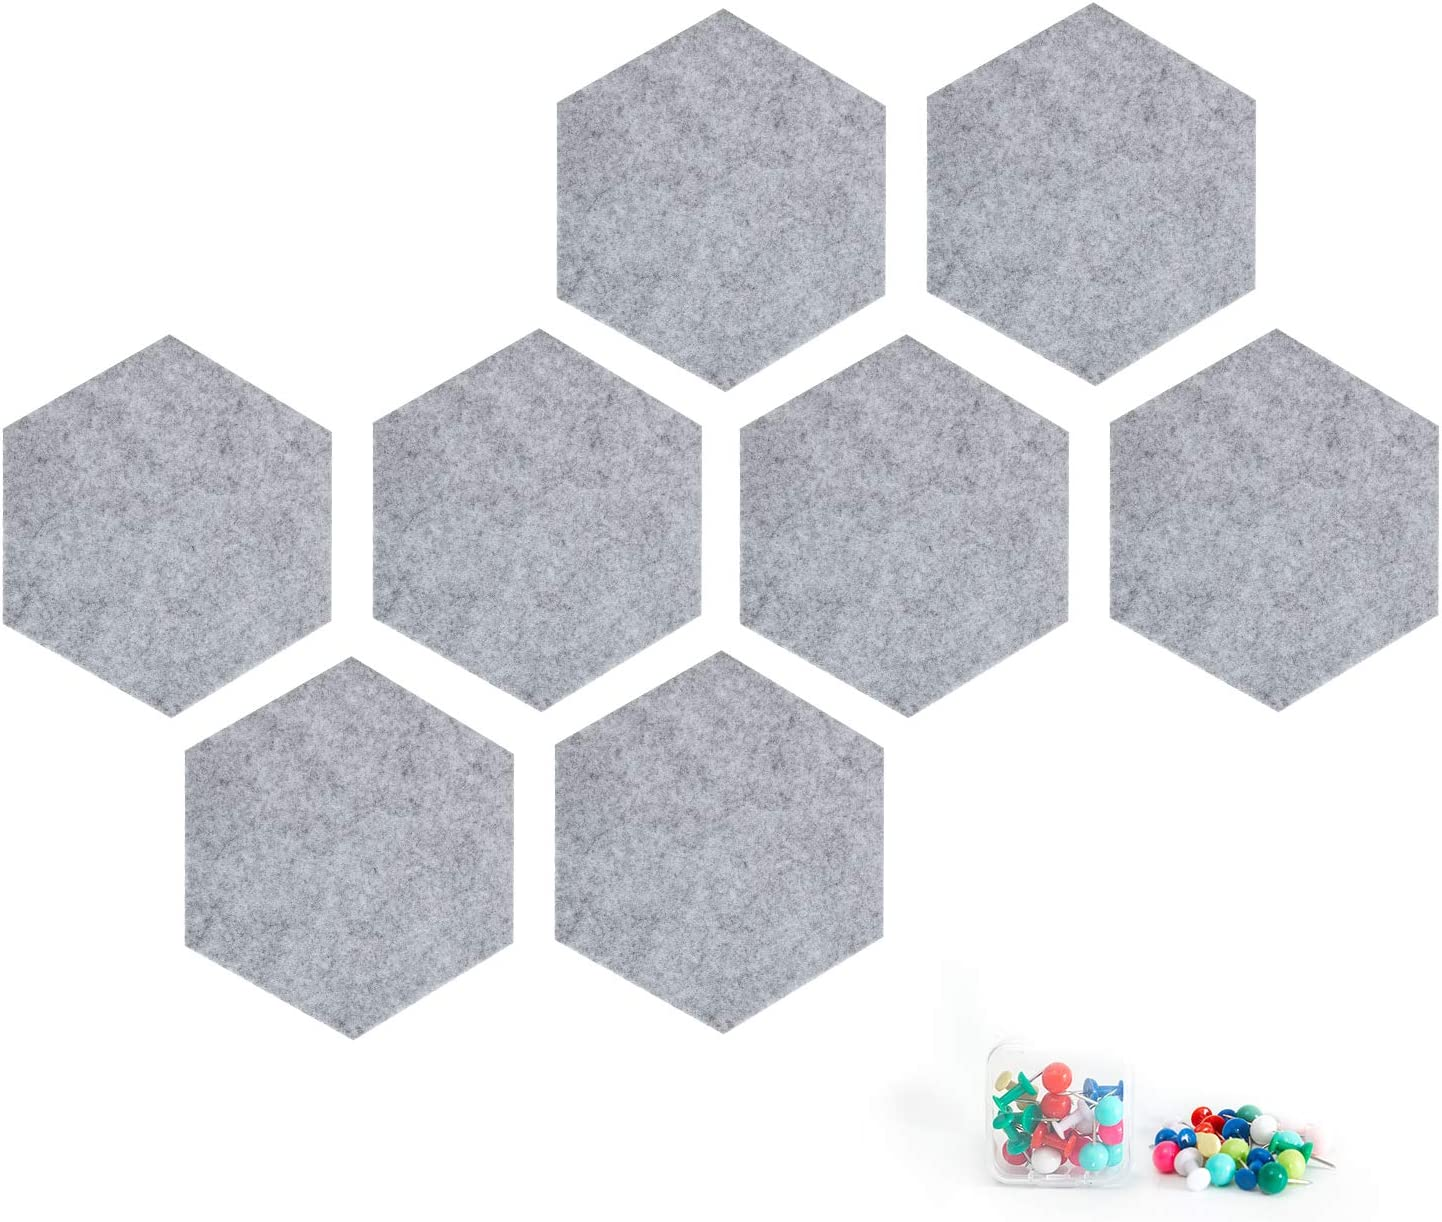 8 Pieces Felt Hexagon Tile Board Cork Board for Wall Decor Self Adhesive Wall Bulletin Boards for Notes,Pictures,Photos,Memo, Office and Home Decor,Light Gray